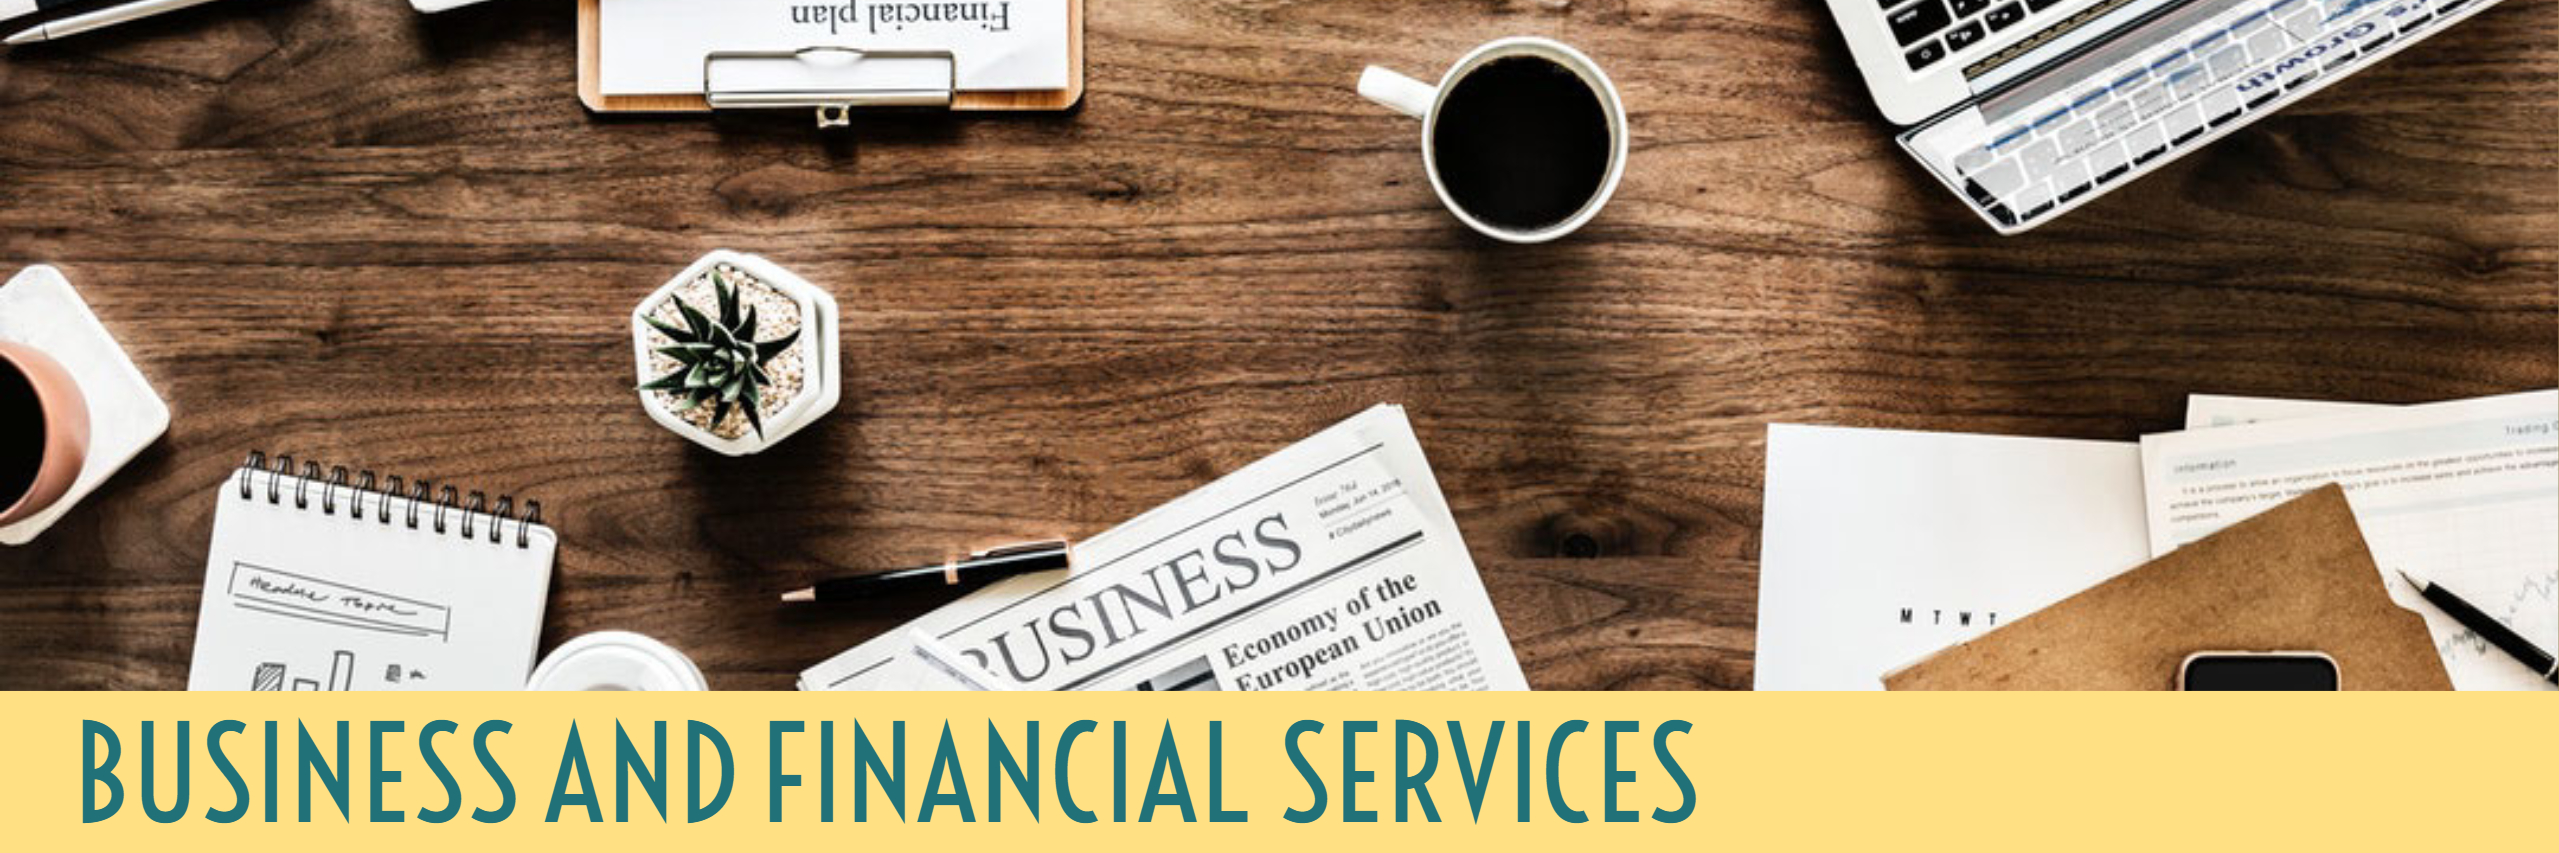 Business and Financial Services, banner image